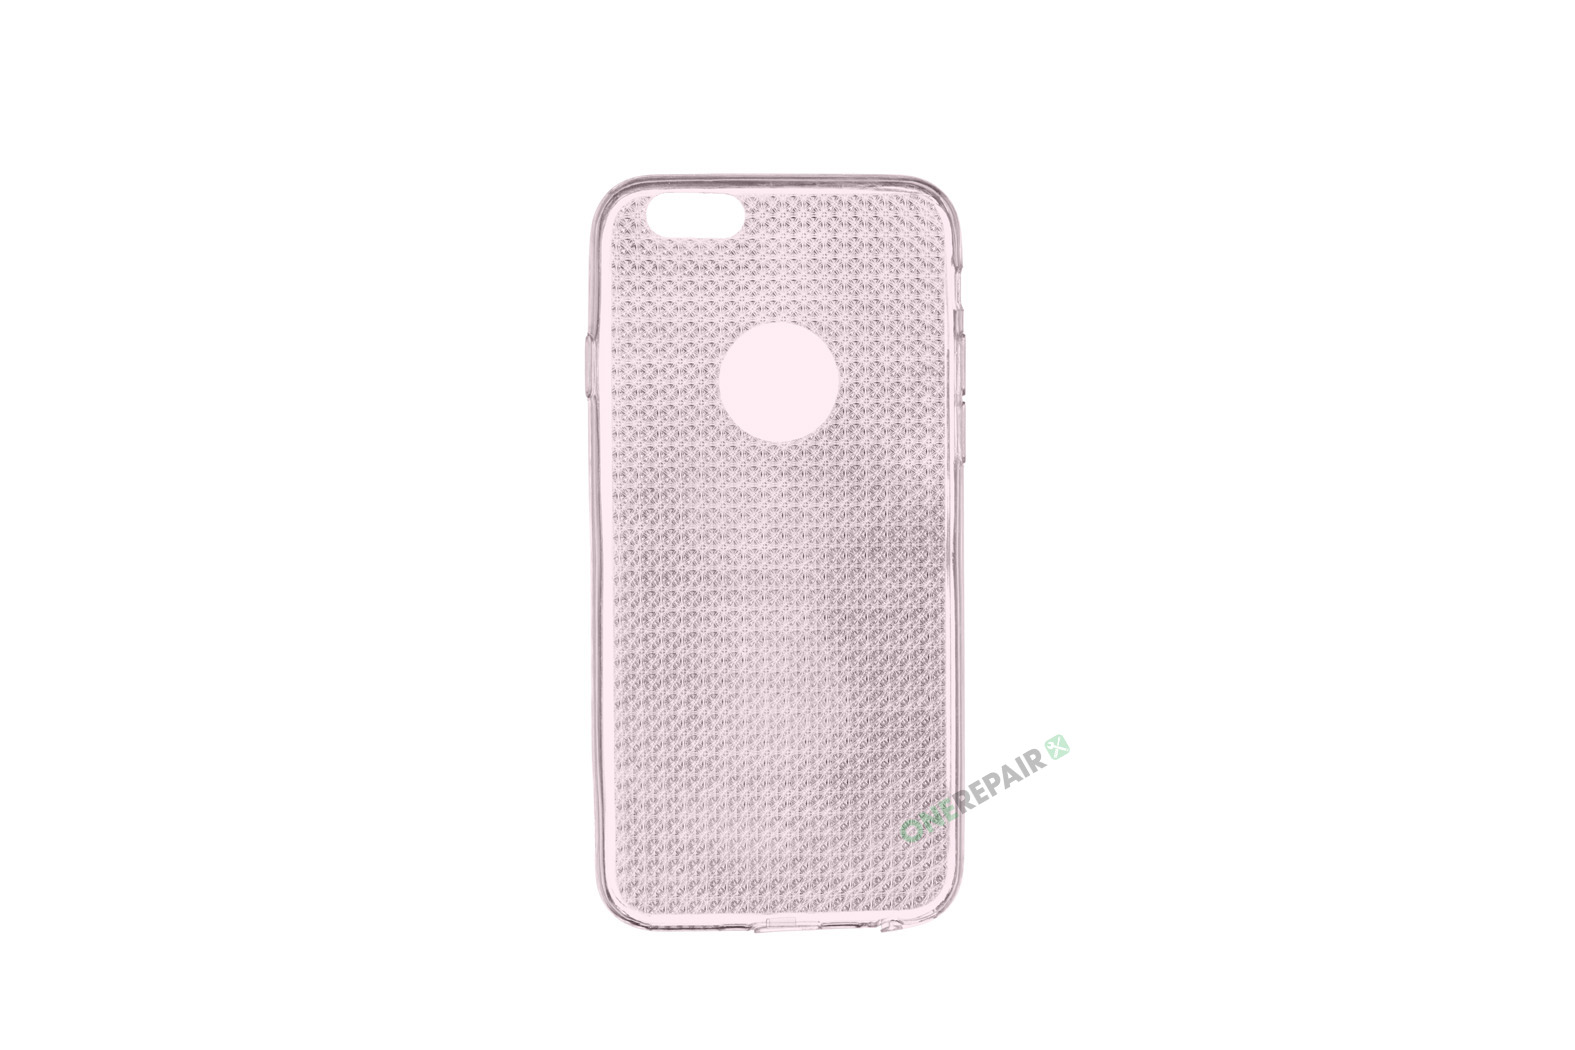 iPhone 6, 6S, A1549, A1586, A1589, A1633, A1688, A1700, A1691, Apple, Cover, Transparent, Gennemsigtig, Pink Lyseroed, Lyserød